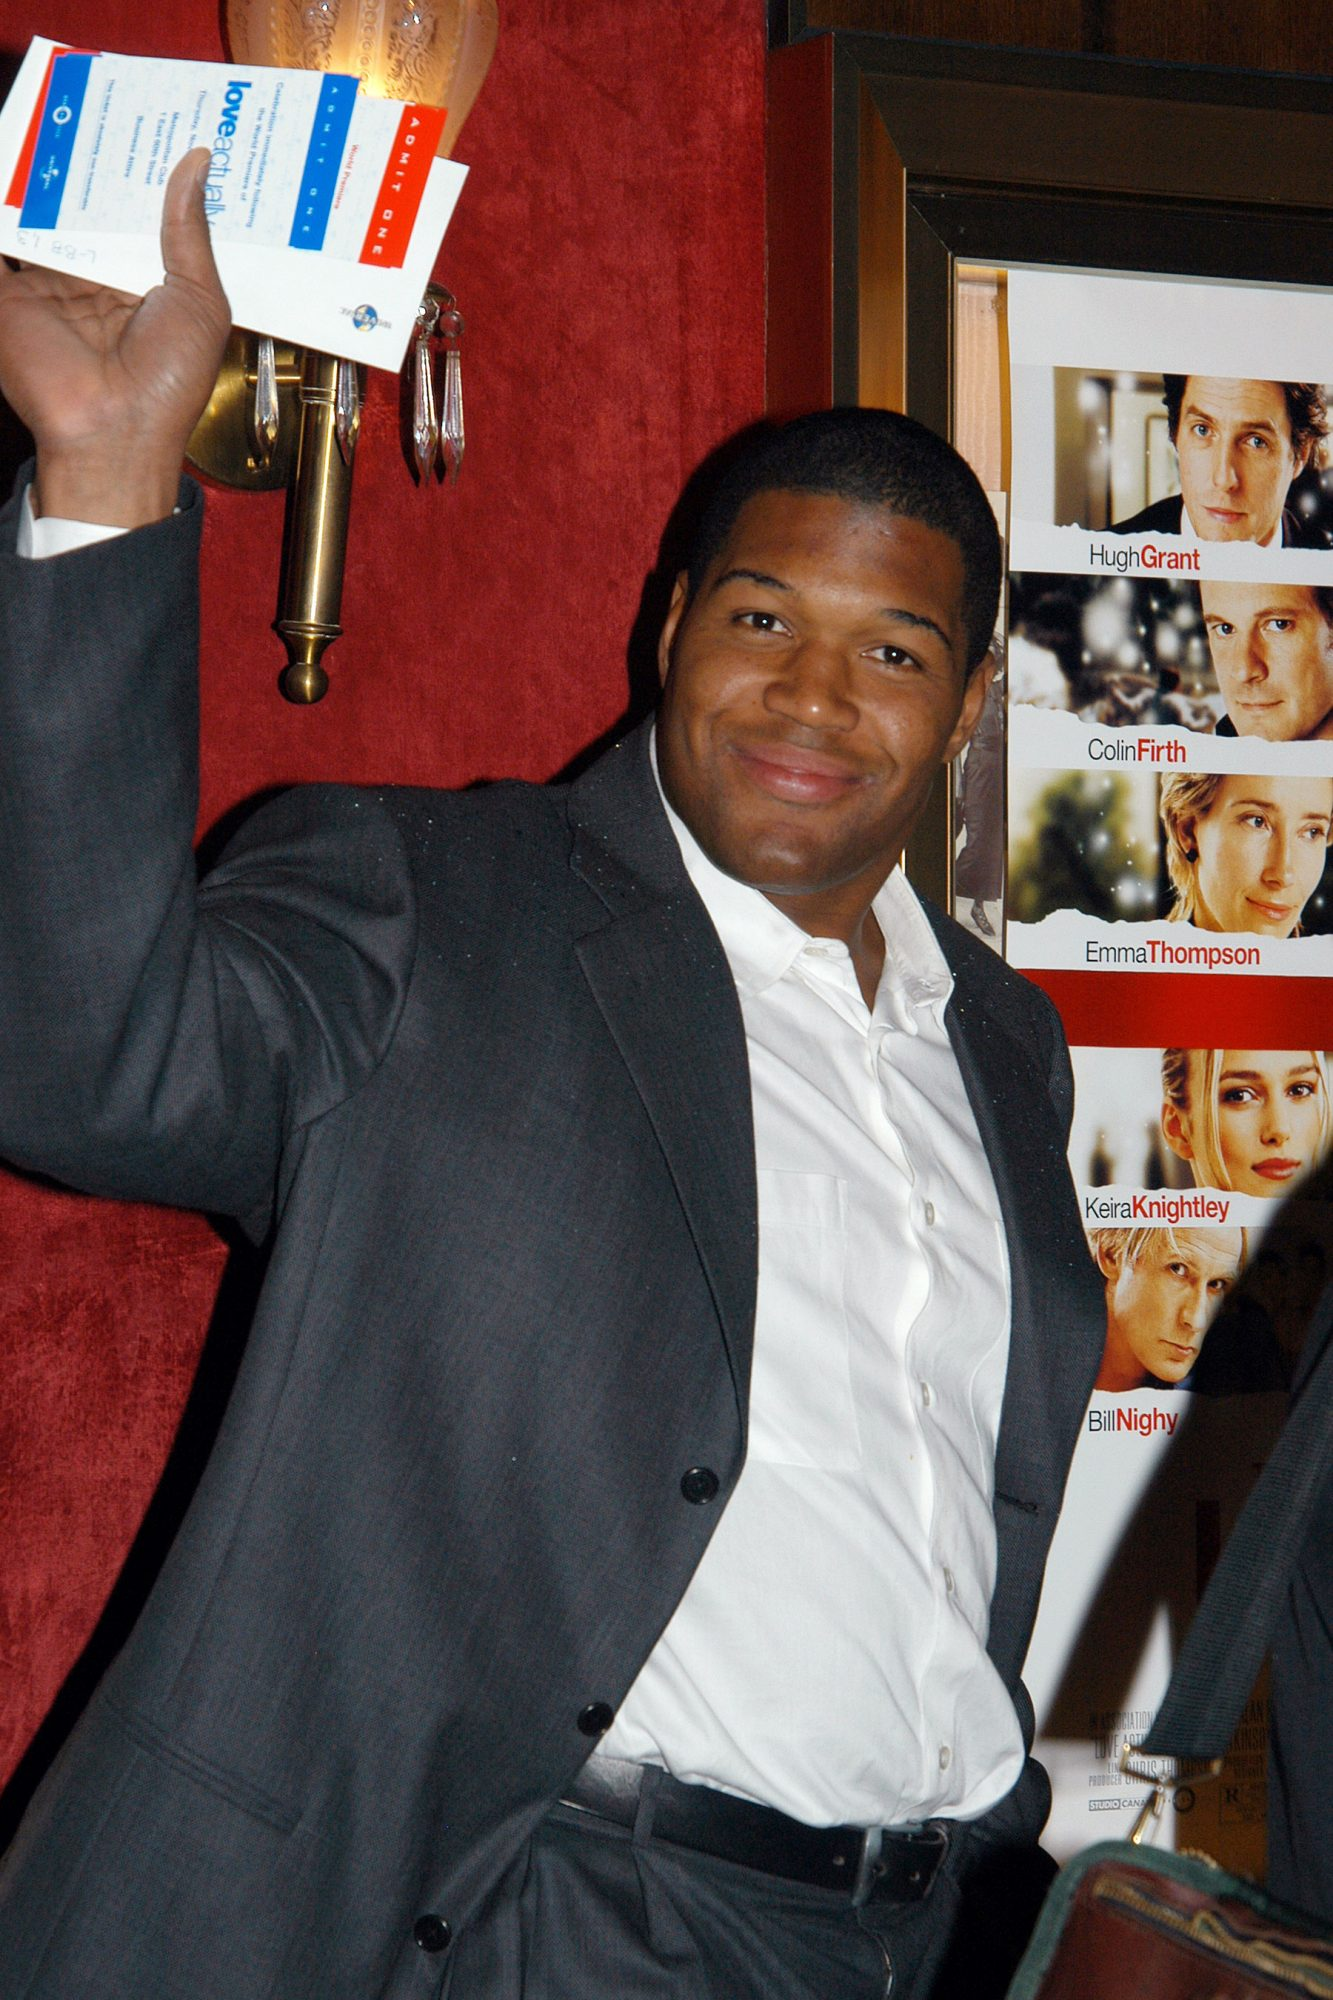 New York Giants' Michael Strahan is on hand at the Ziegfeld